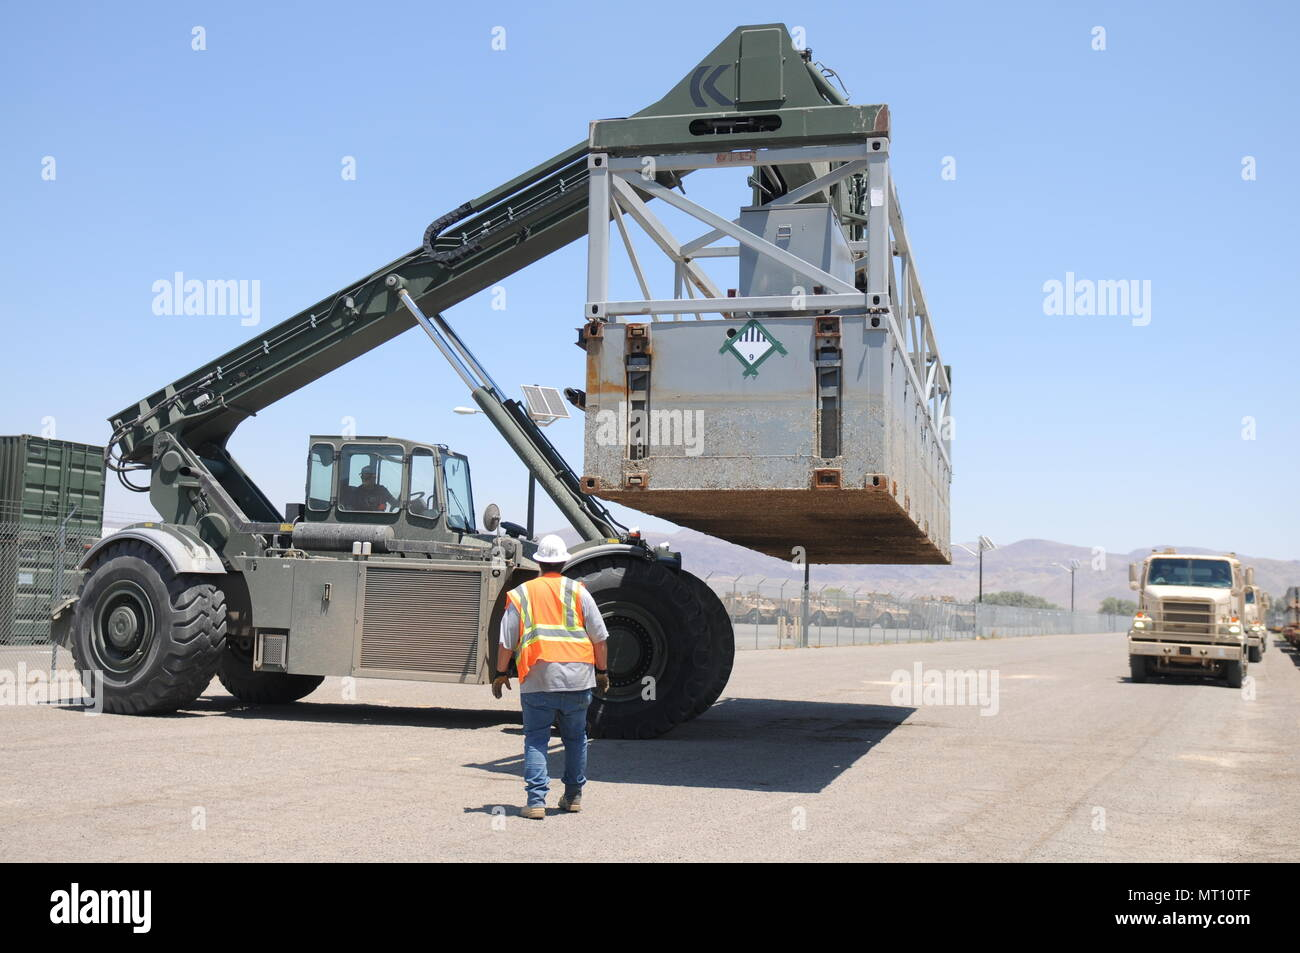 A portion of a Modular Causeway System (MCS) is moved into position so it can be loaded onto a 250th TC M915 truck for transport to the Port of San Diego as a part of Exercise Big LOTS West 17. - Stock Image